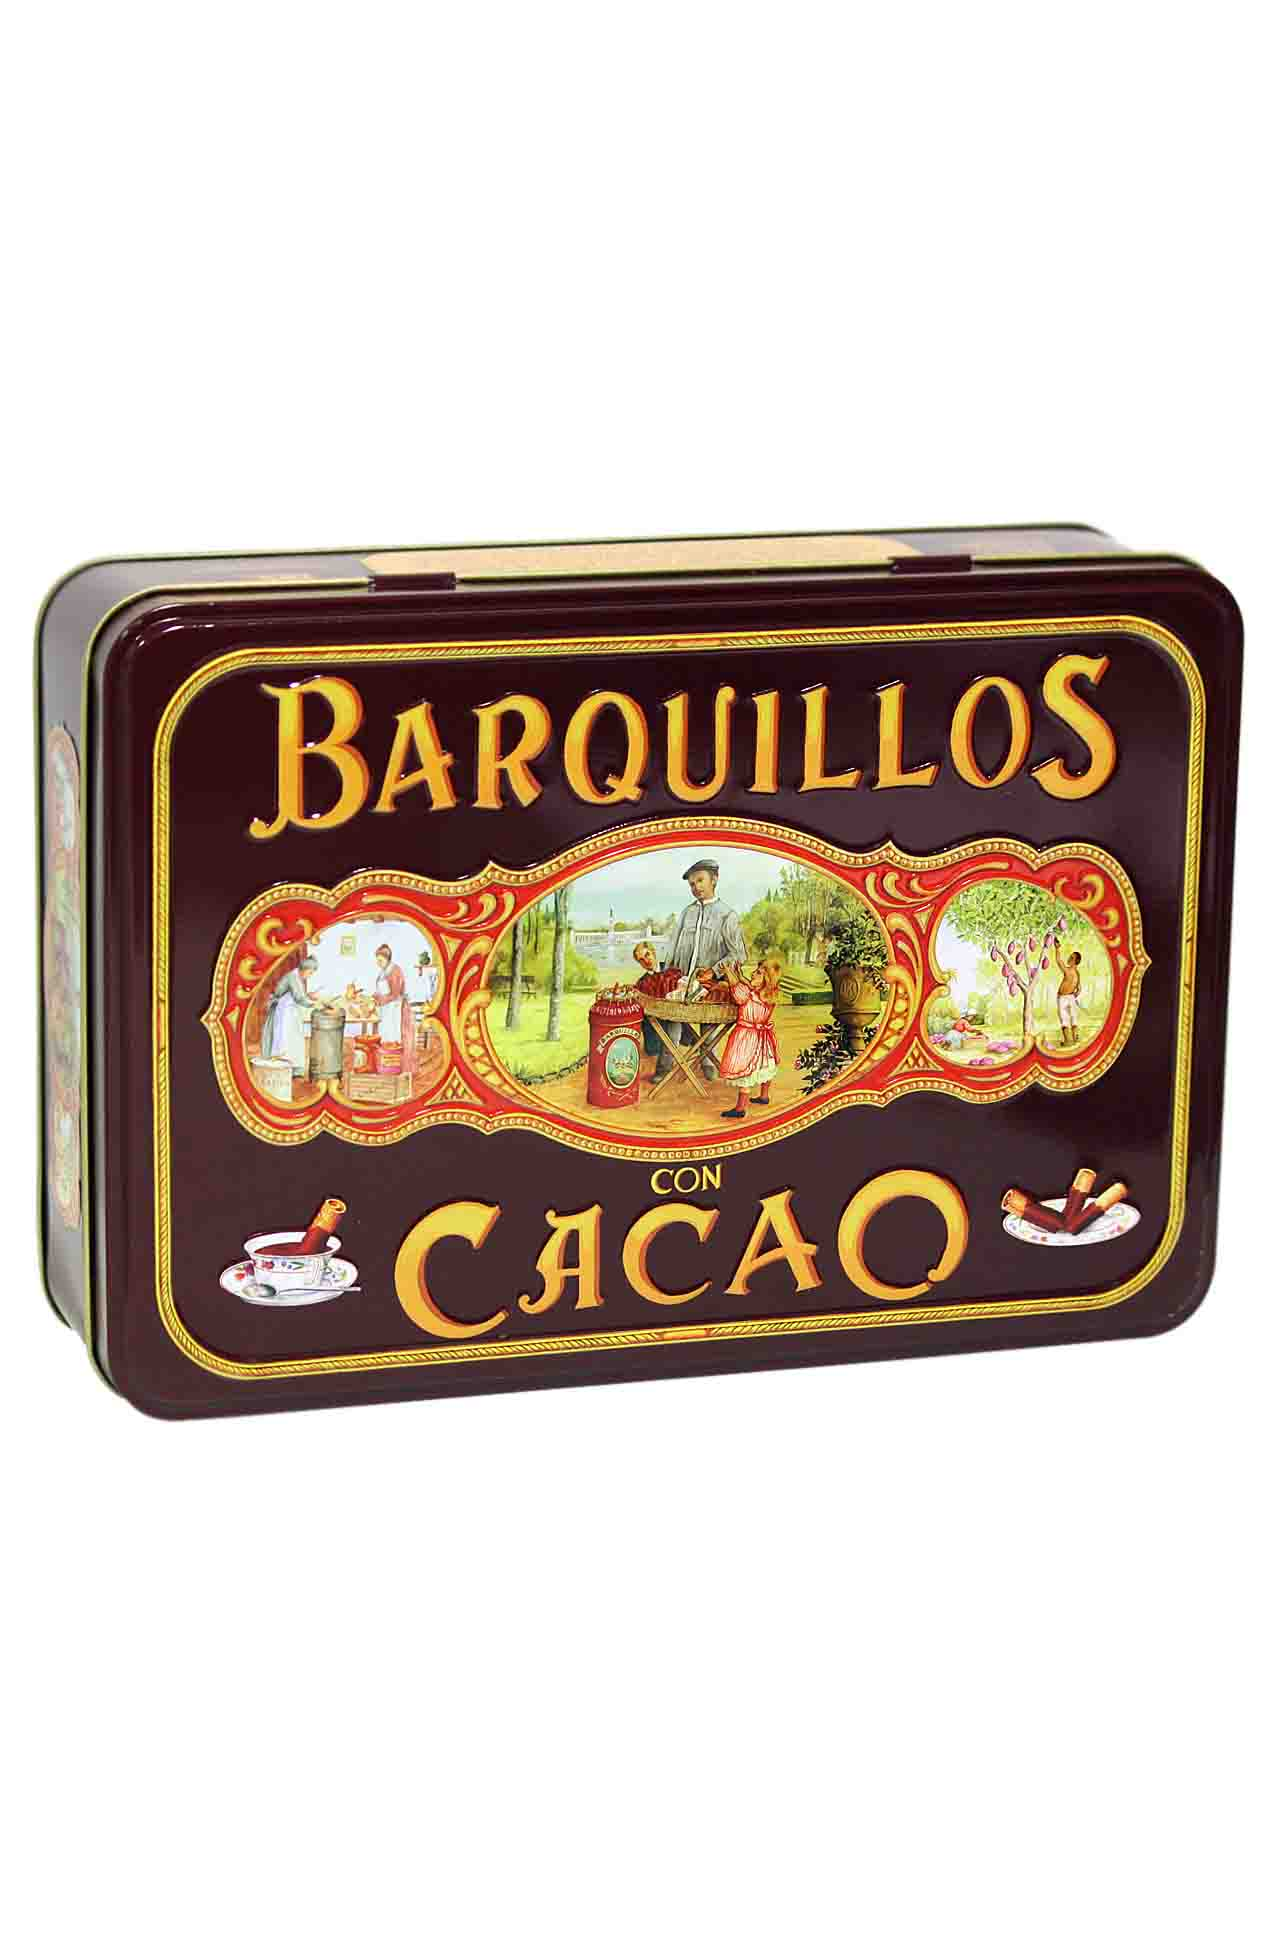 Barquillos con chocolate